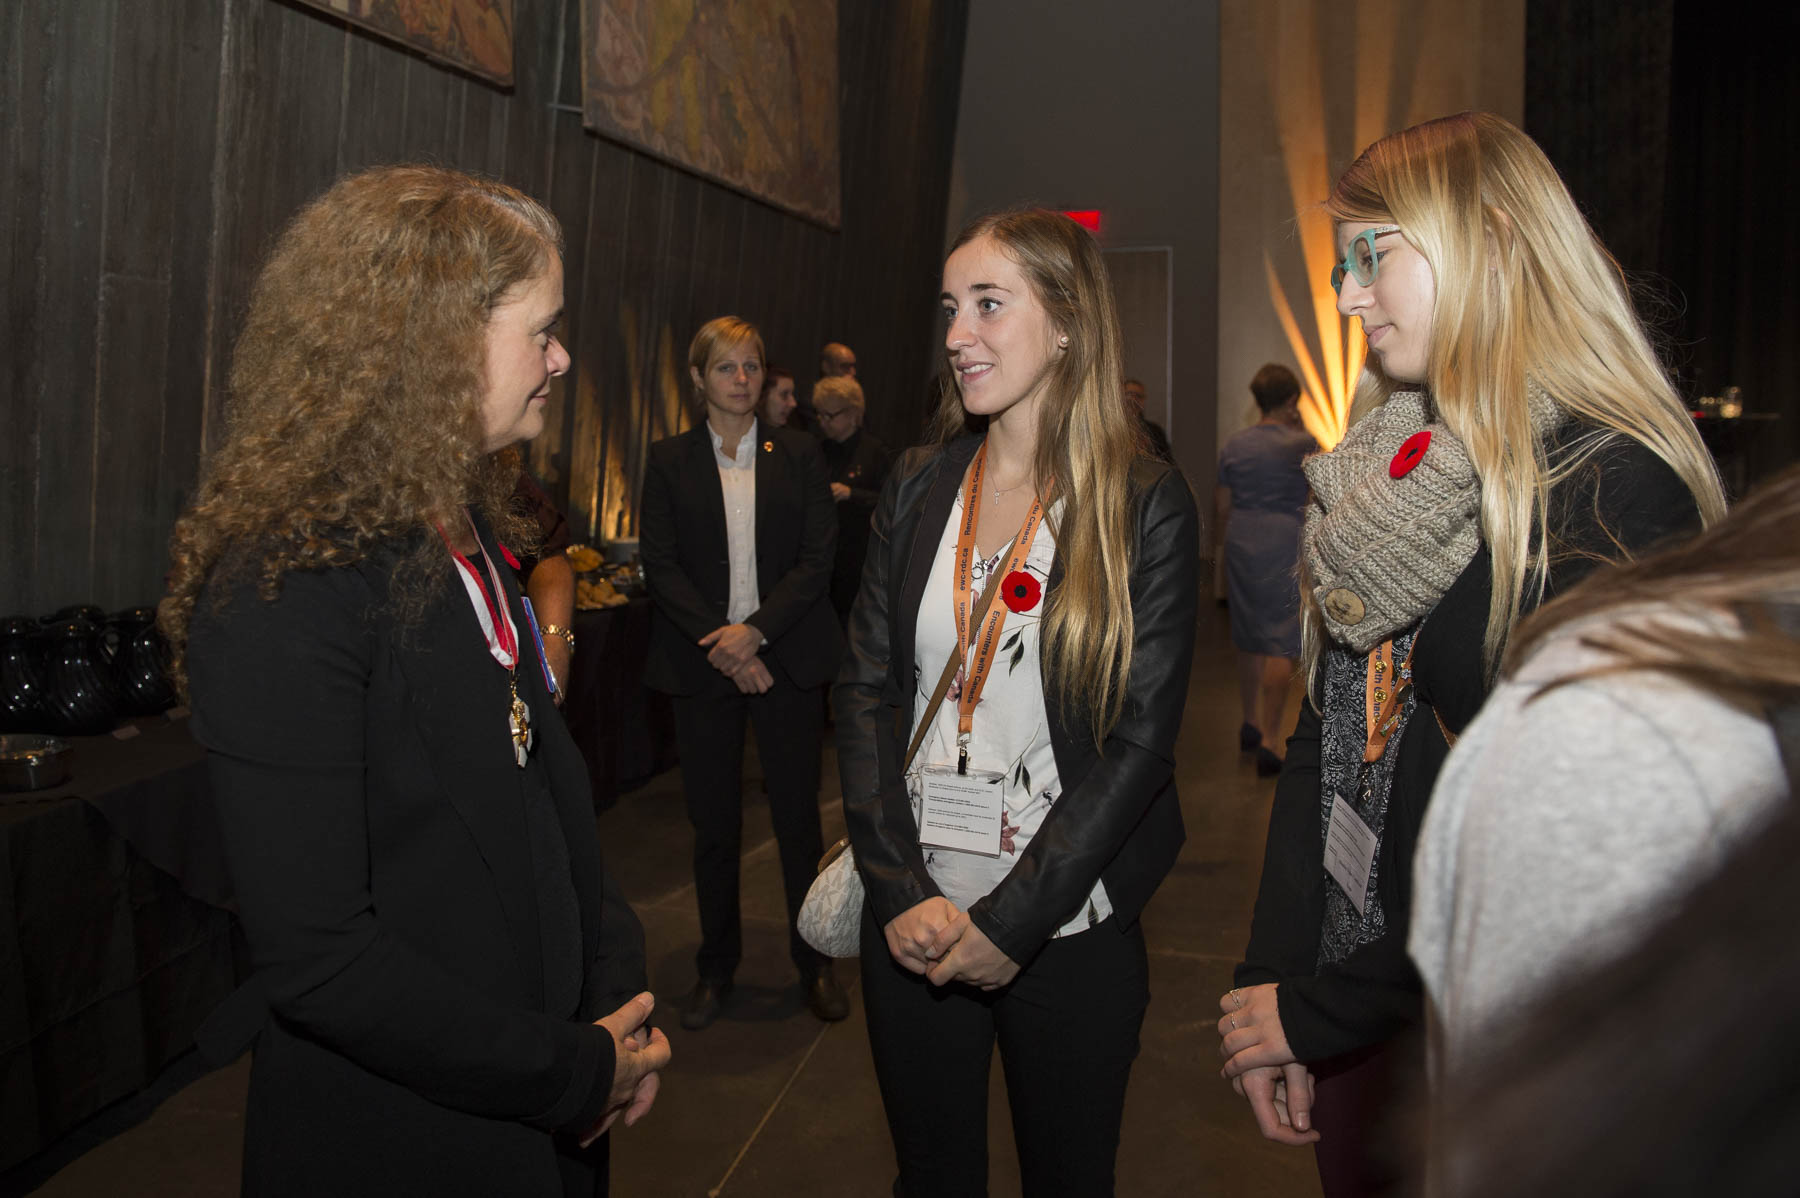 After the ceremony, Her Excellency met with some of the 125 students from Encounters Canada who will be taking part in commemorations to be held in Canada.